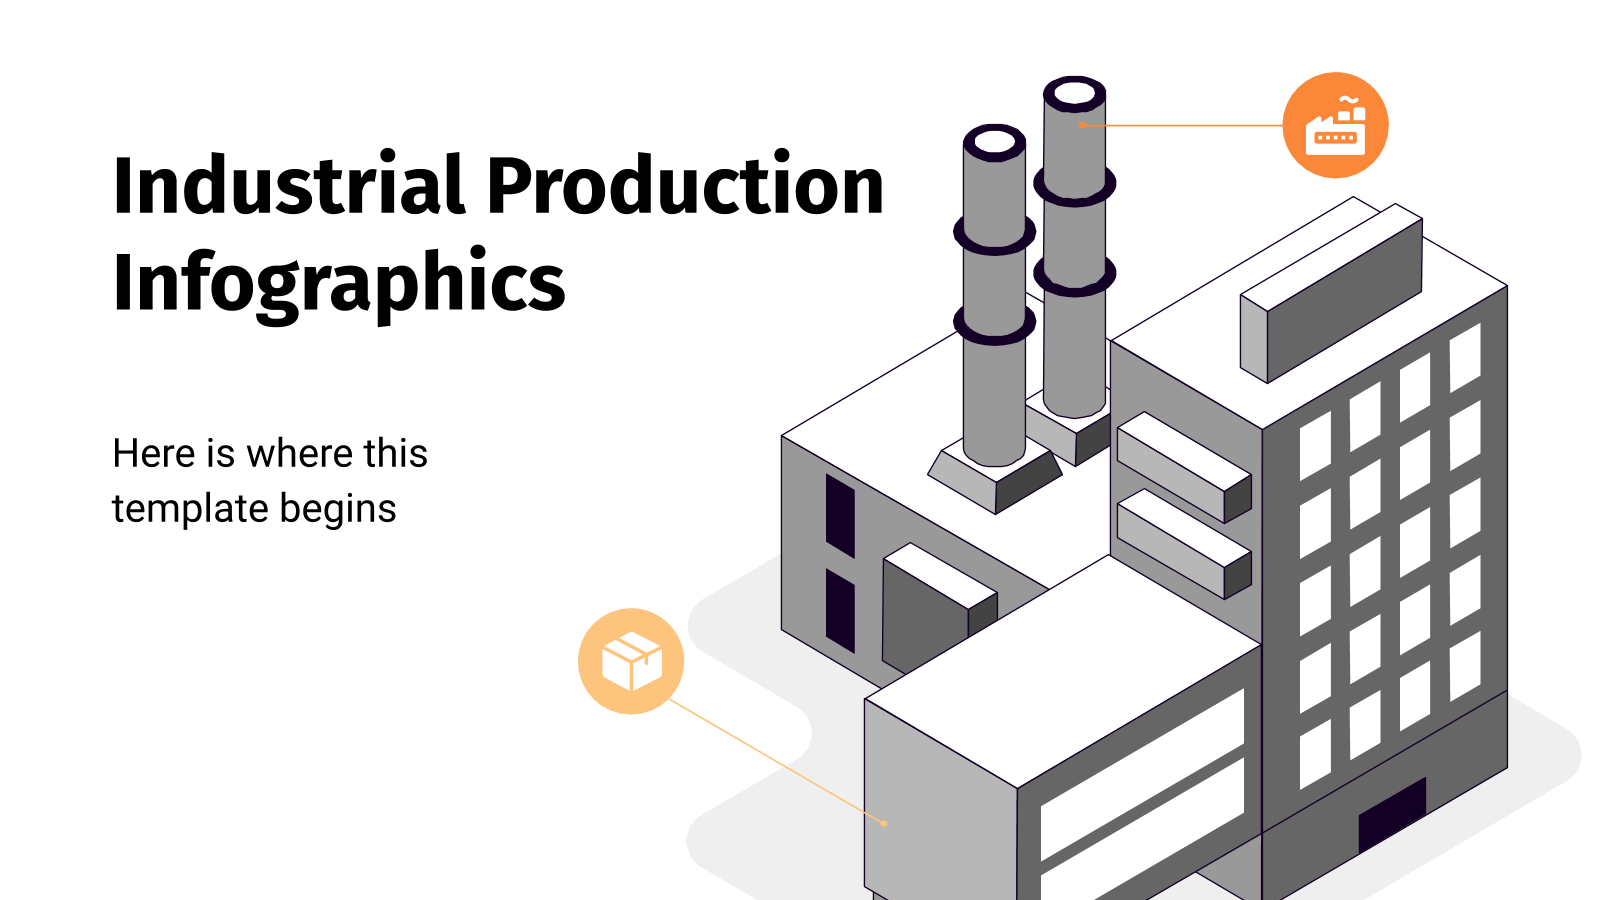 Industrial Production Infographics presentation template